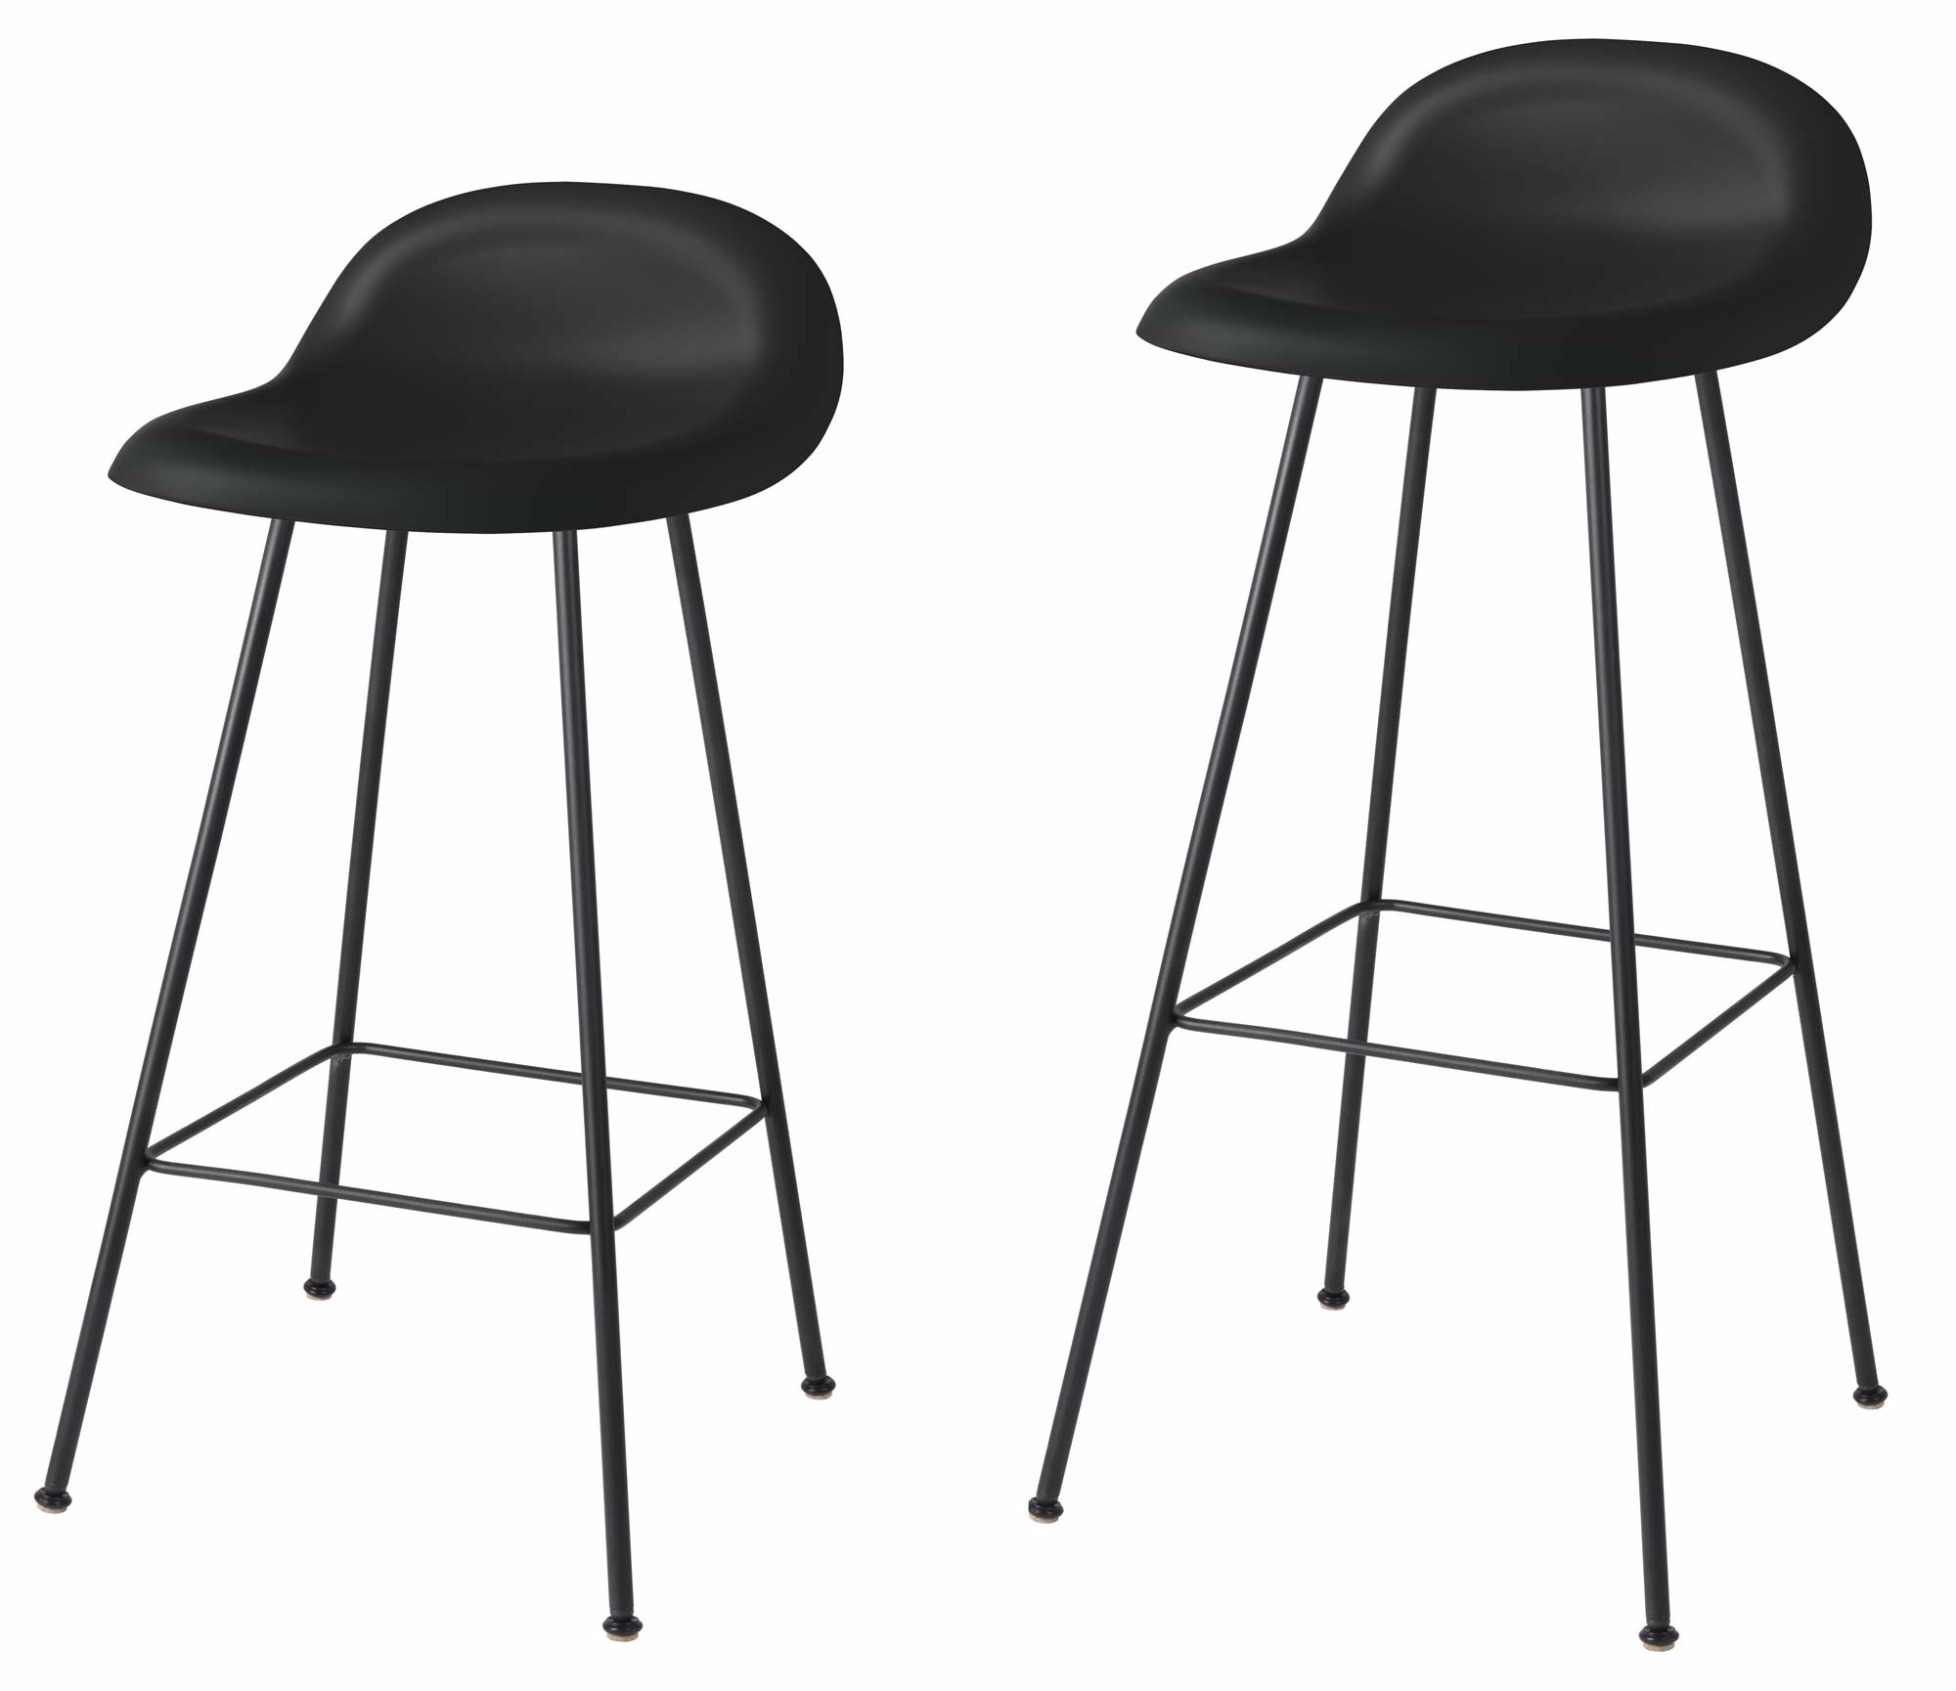 Bar stool gubi 3d center base hirek for Barhocker 3d model